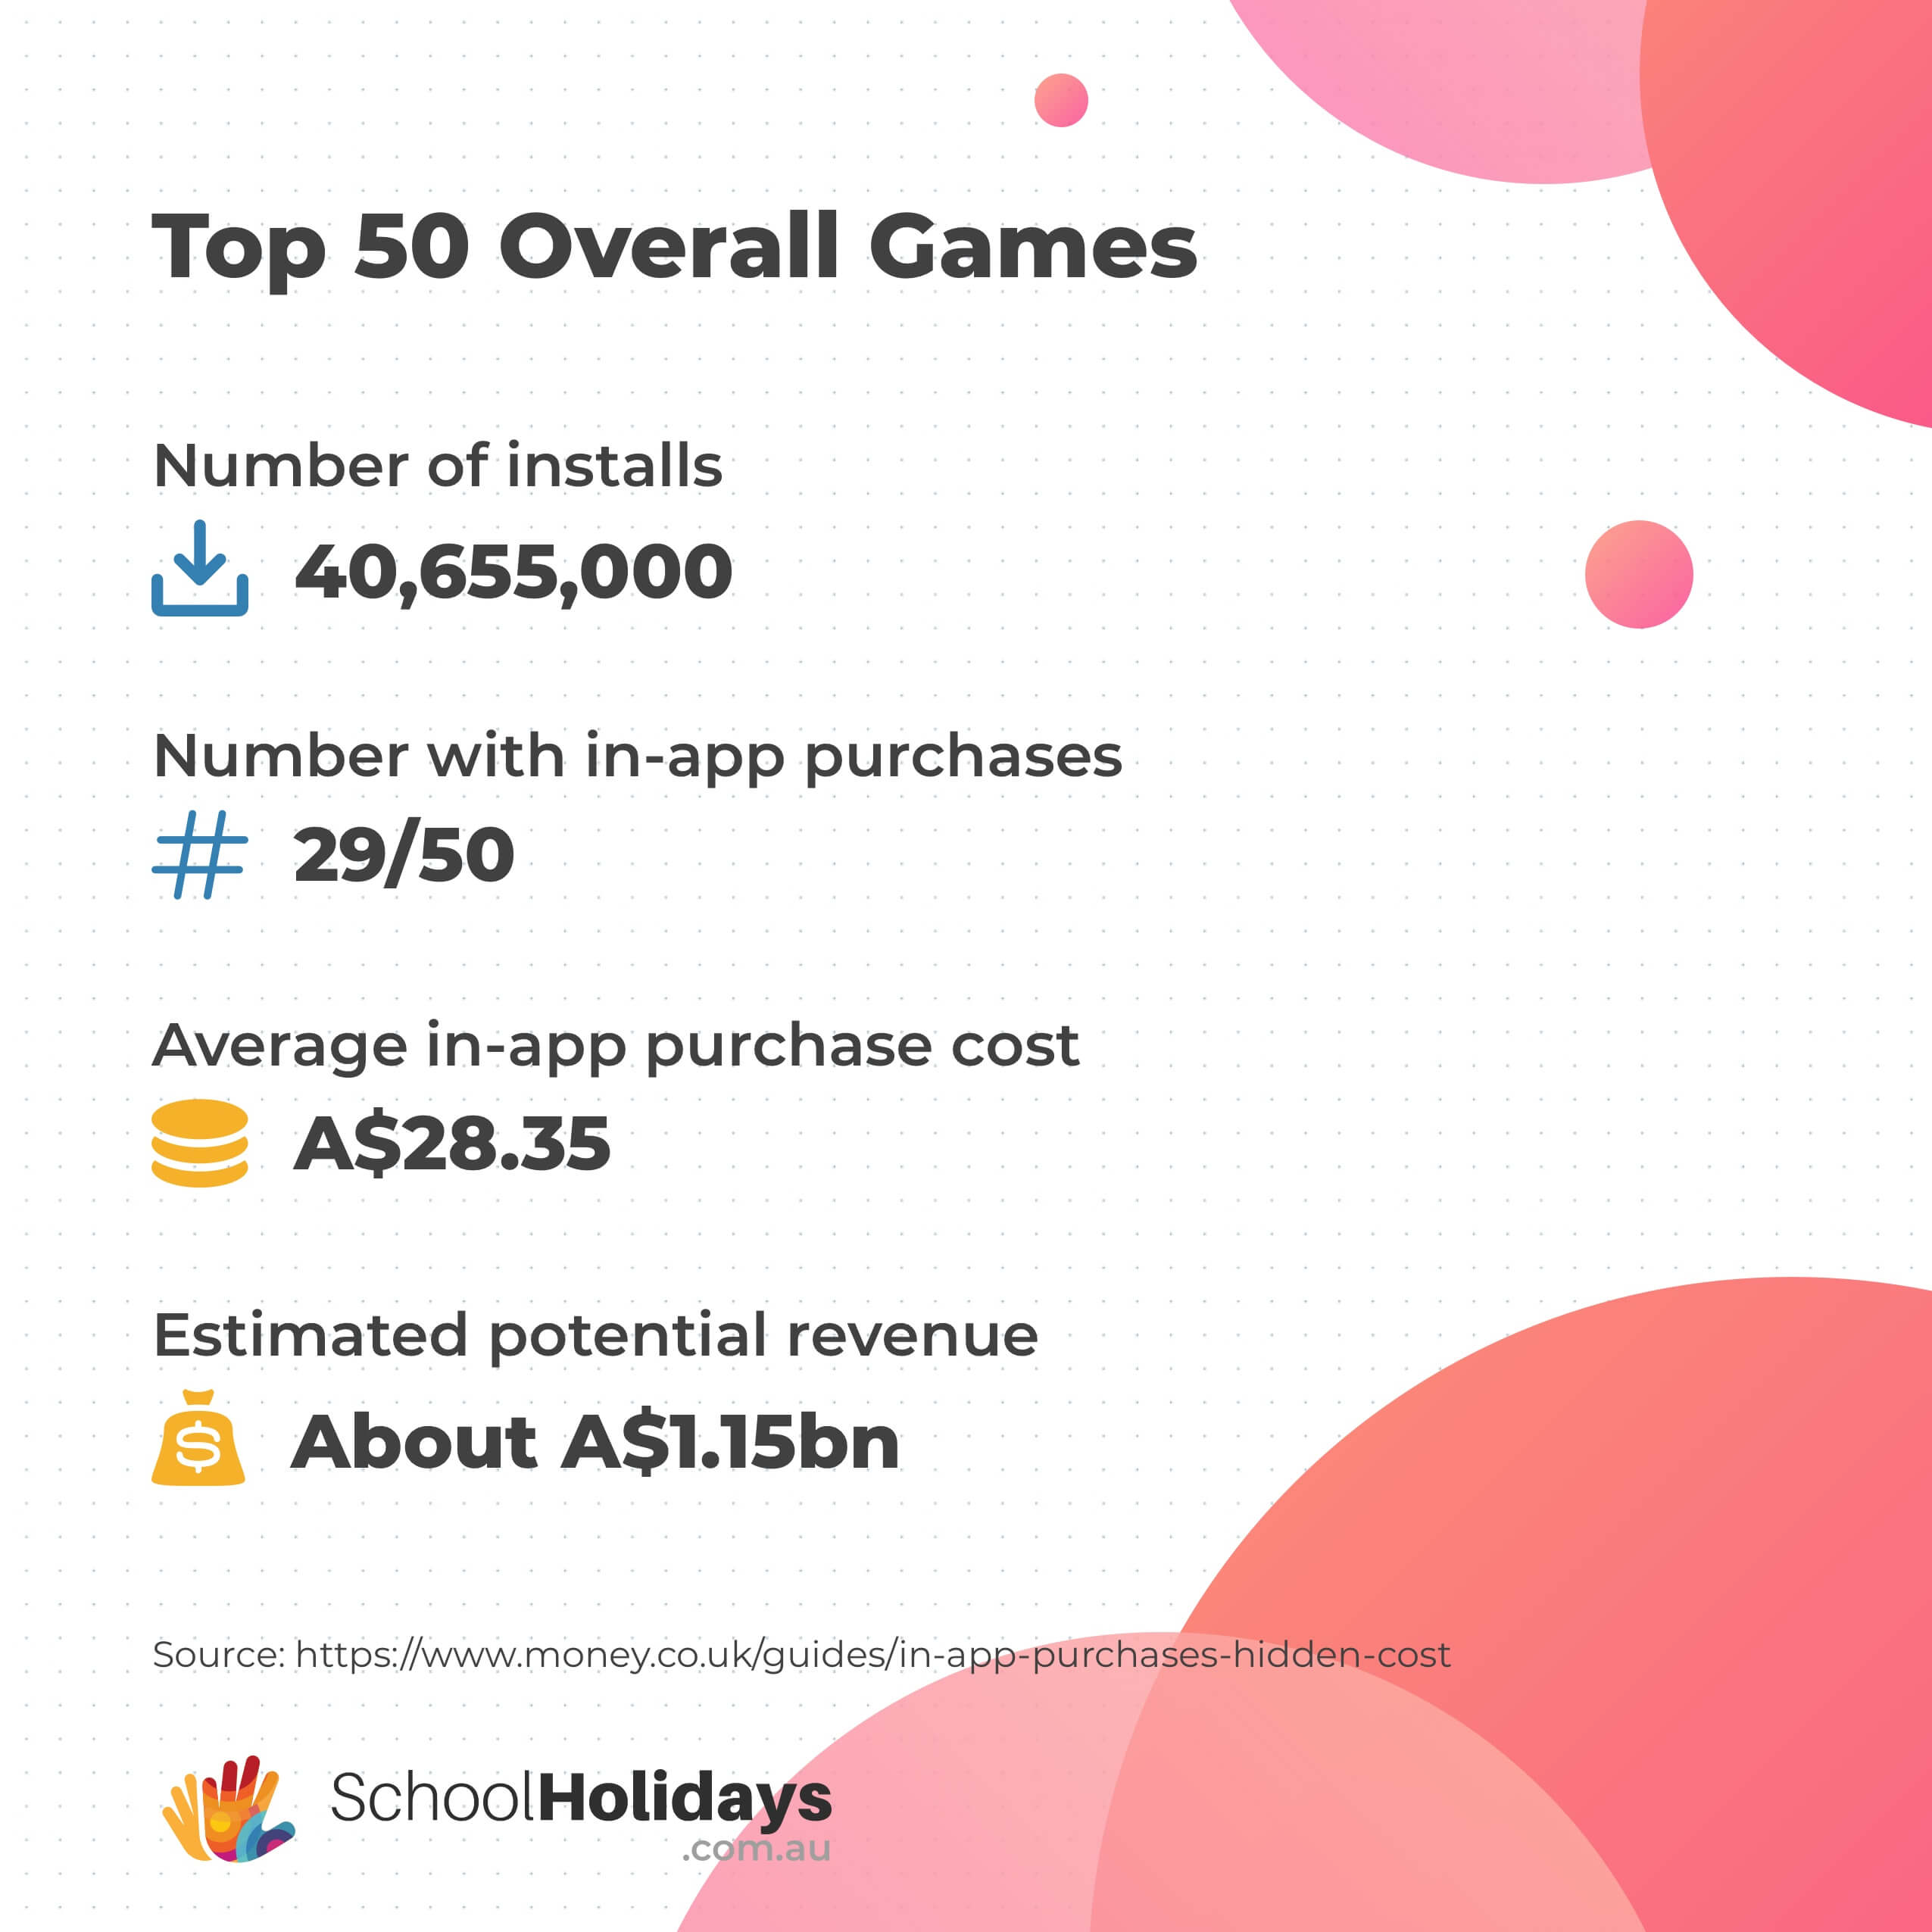 Google Play store's Top Free Games stats by Money.co.uk converted into Australian Dollars as of 21 May 2020